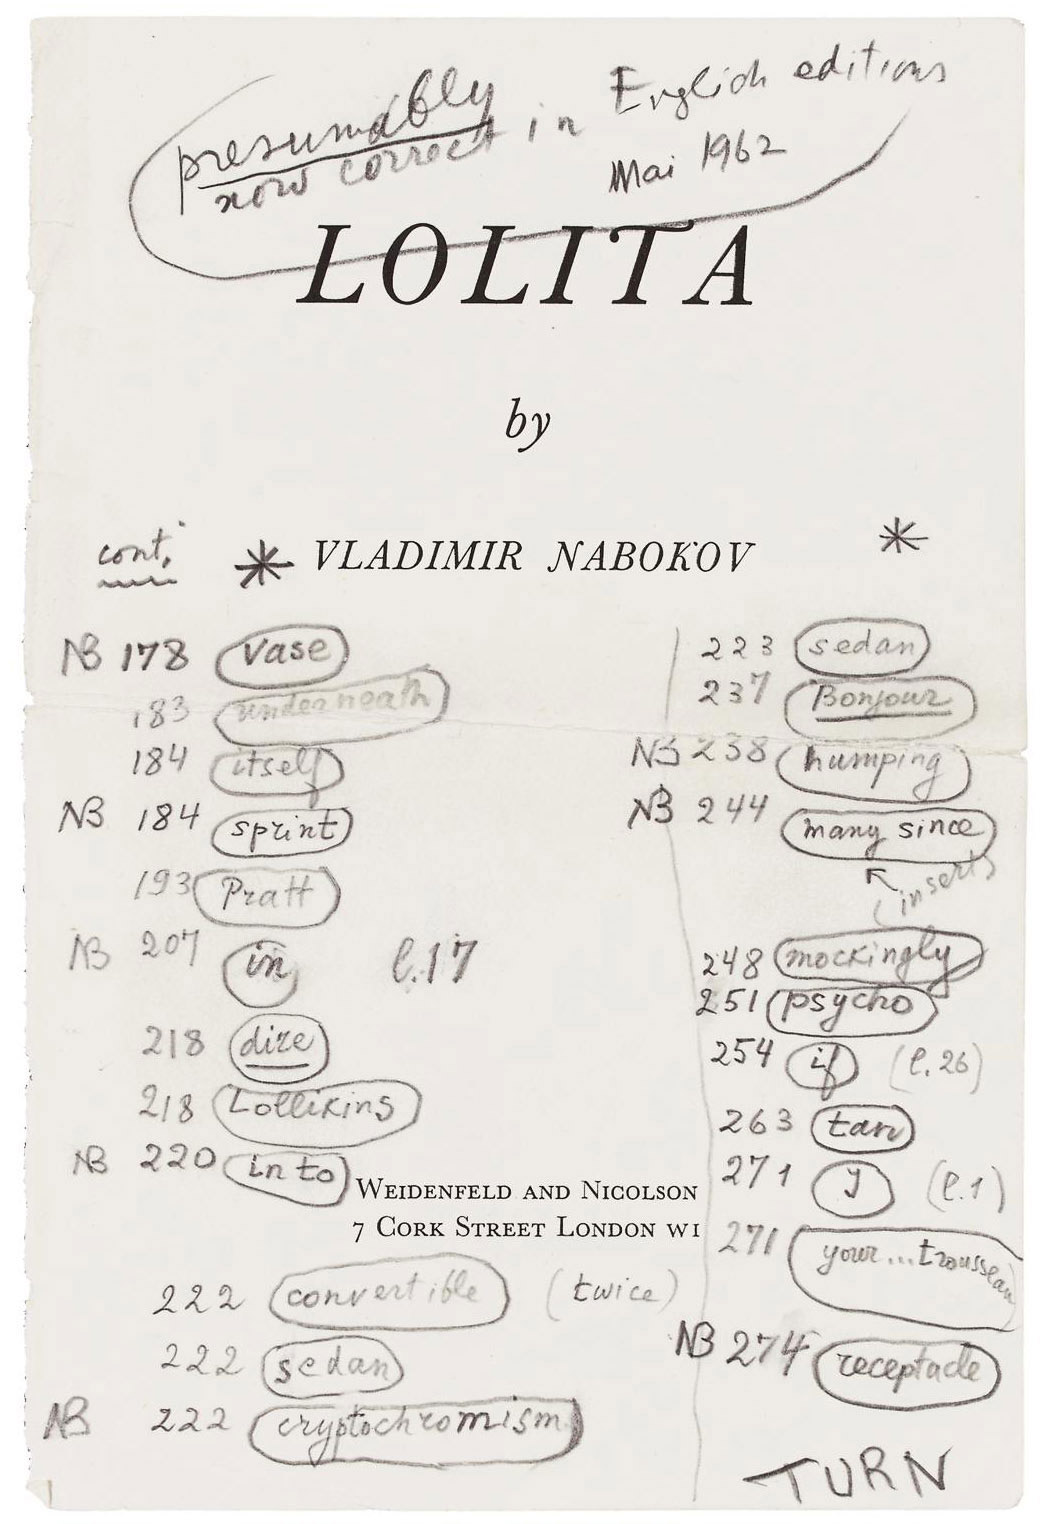 NABOKOV, Vladimir (1899-1977). Autograph list of errata for the first English edition of Lolita, 59 words or phrases with page numbers, 21 marked 'NB', meaning 'Especially bad', in pencil and pen on half-title and title extracted from the same edition (London: Wiedenfeld and Nicolson, 1959), the latter annotated 'presumably now correct in English editions, Mai [sic] 1962', 2 leaves, 8vo, with two typescript lists of corrections; with Nabokov's copy of the Corgi edition (6th English printing, 1961), with a single emendation (of a comma), to p.41. Provenance: by descent from Vladimir Nabokov.